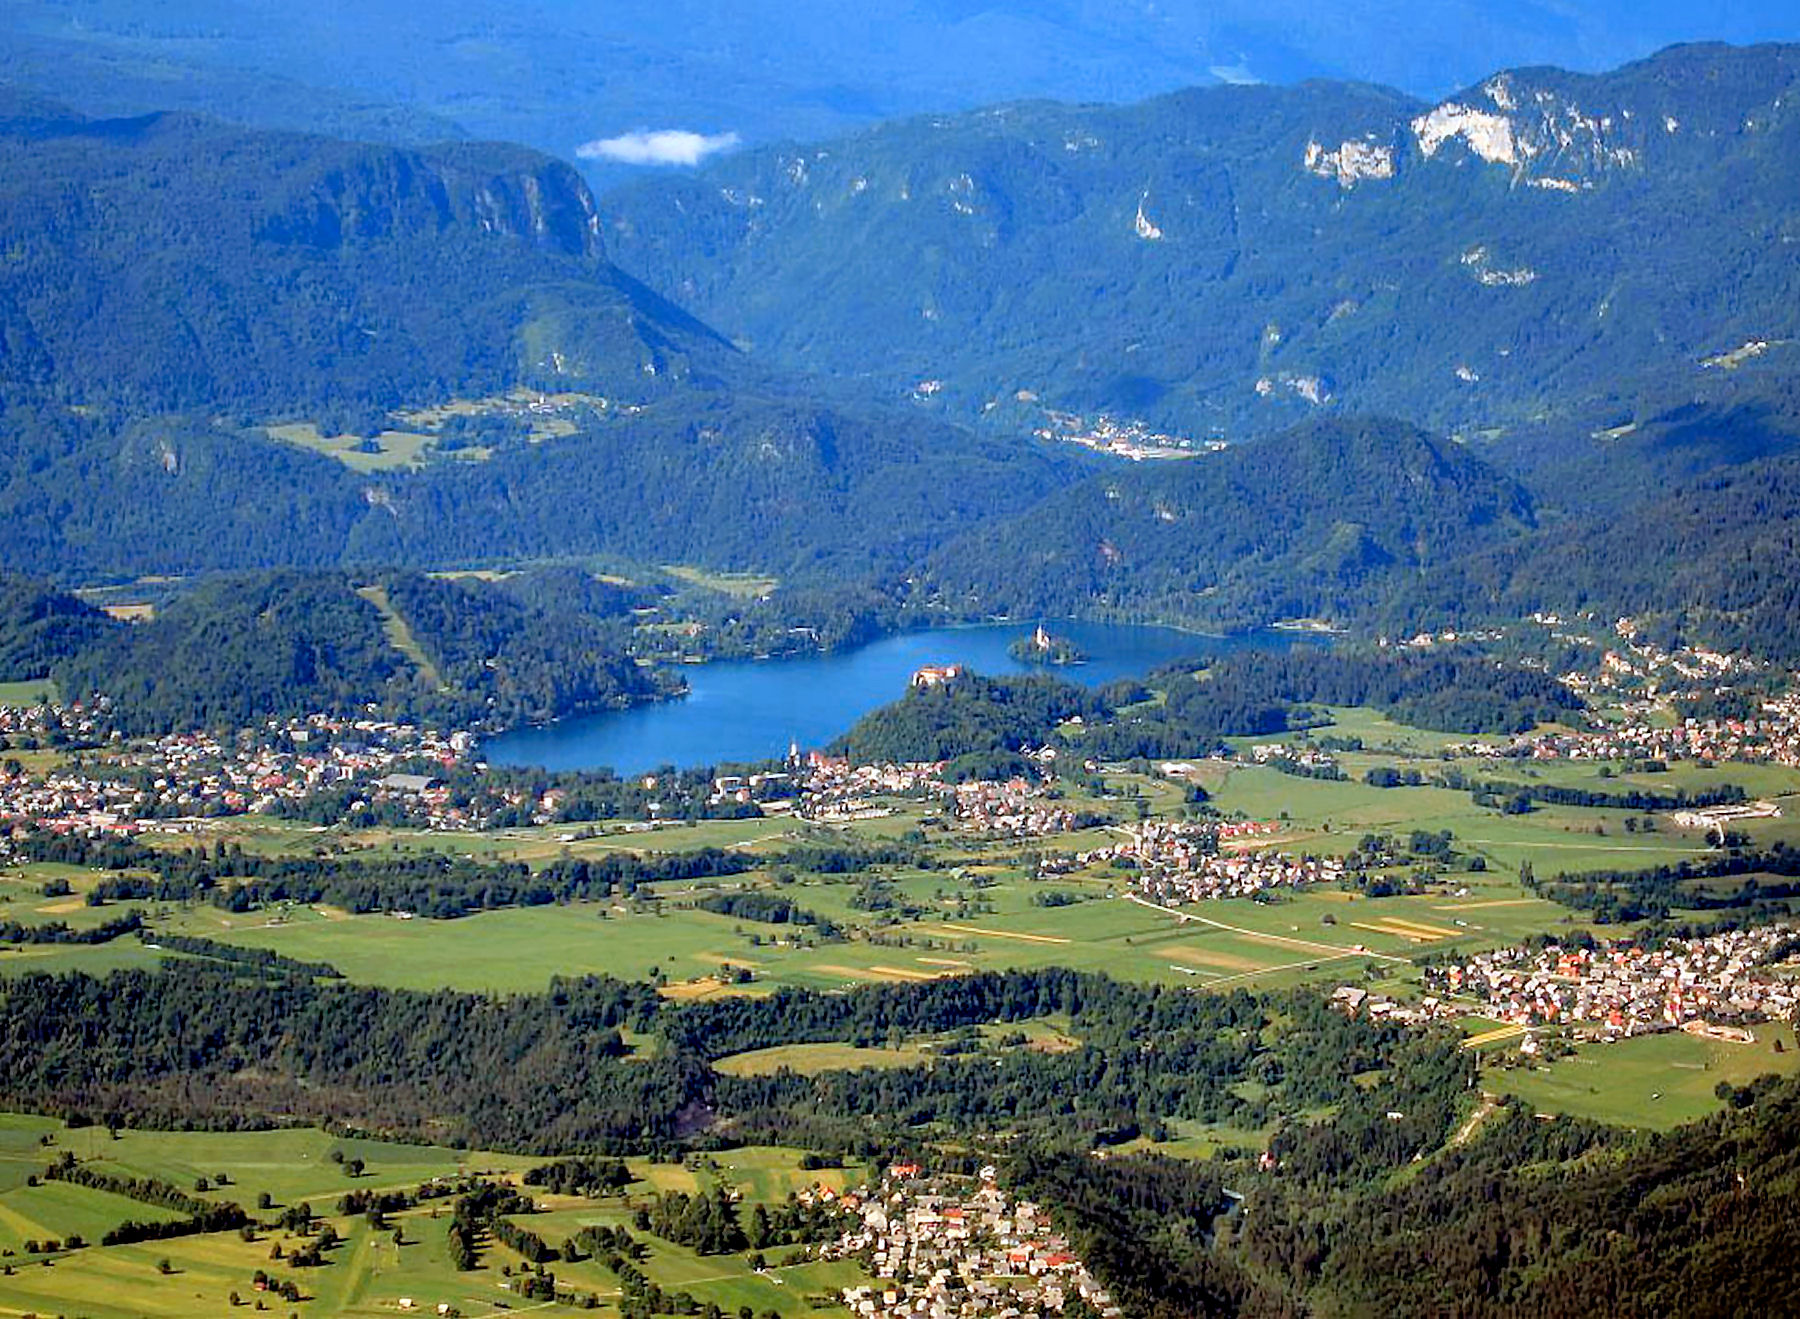 Bled, together with its surroundings, ranks among the most beautiful vacation resorts in Europe